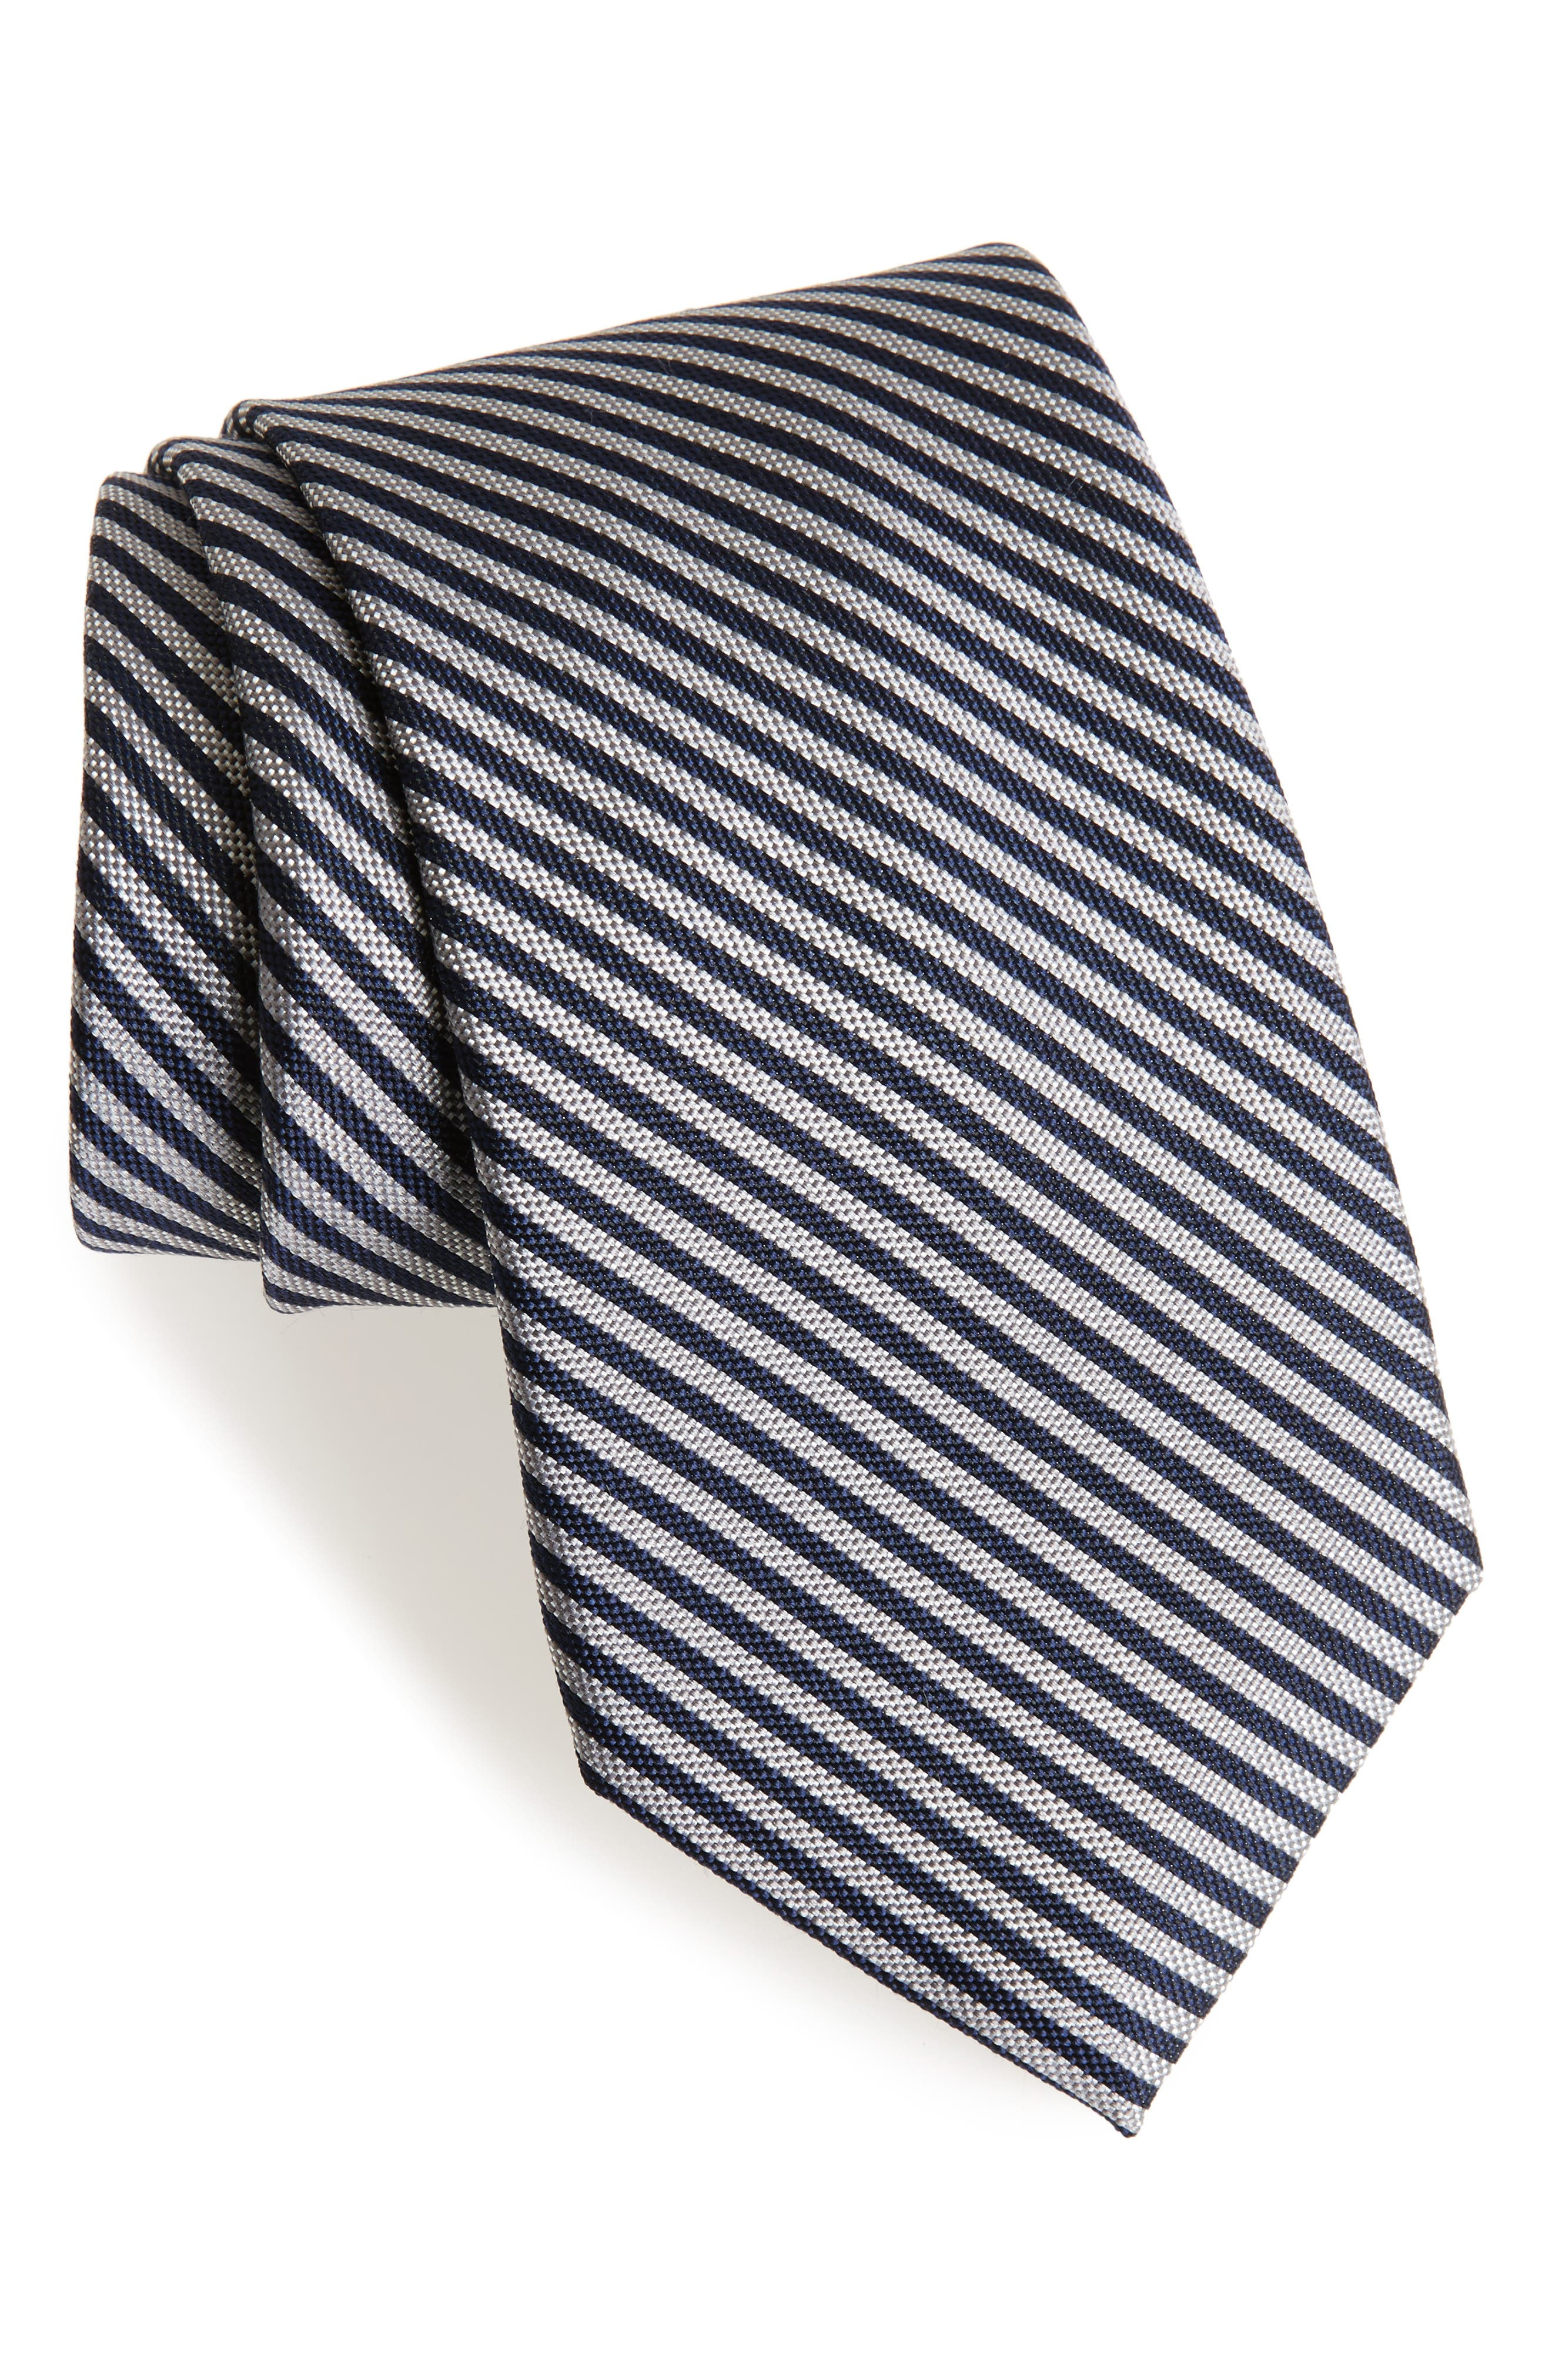 Alternate Image 1 Selected - Calibrate Stripe Silk Tie